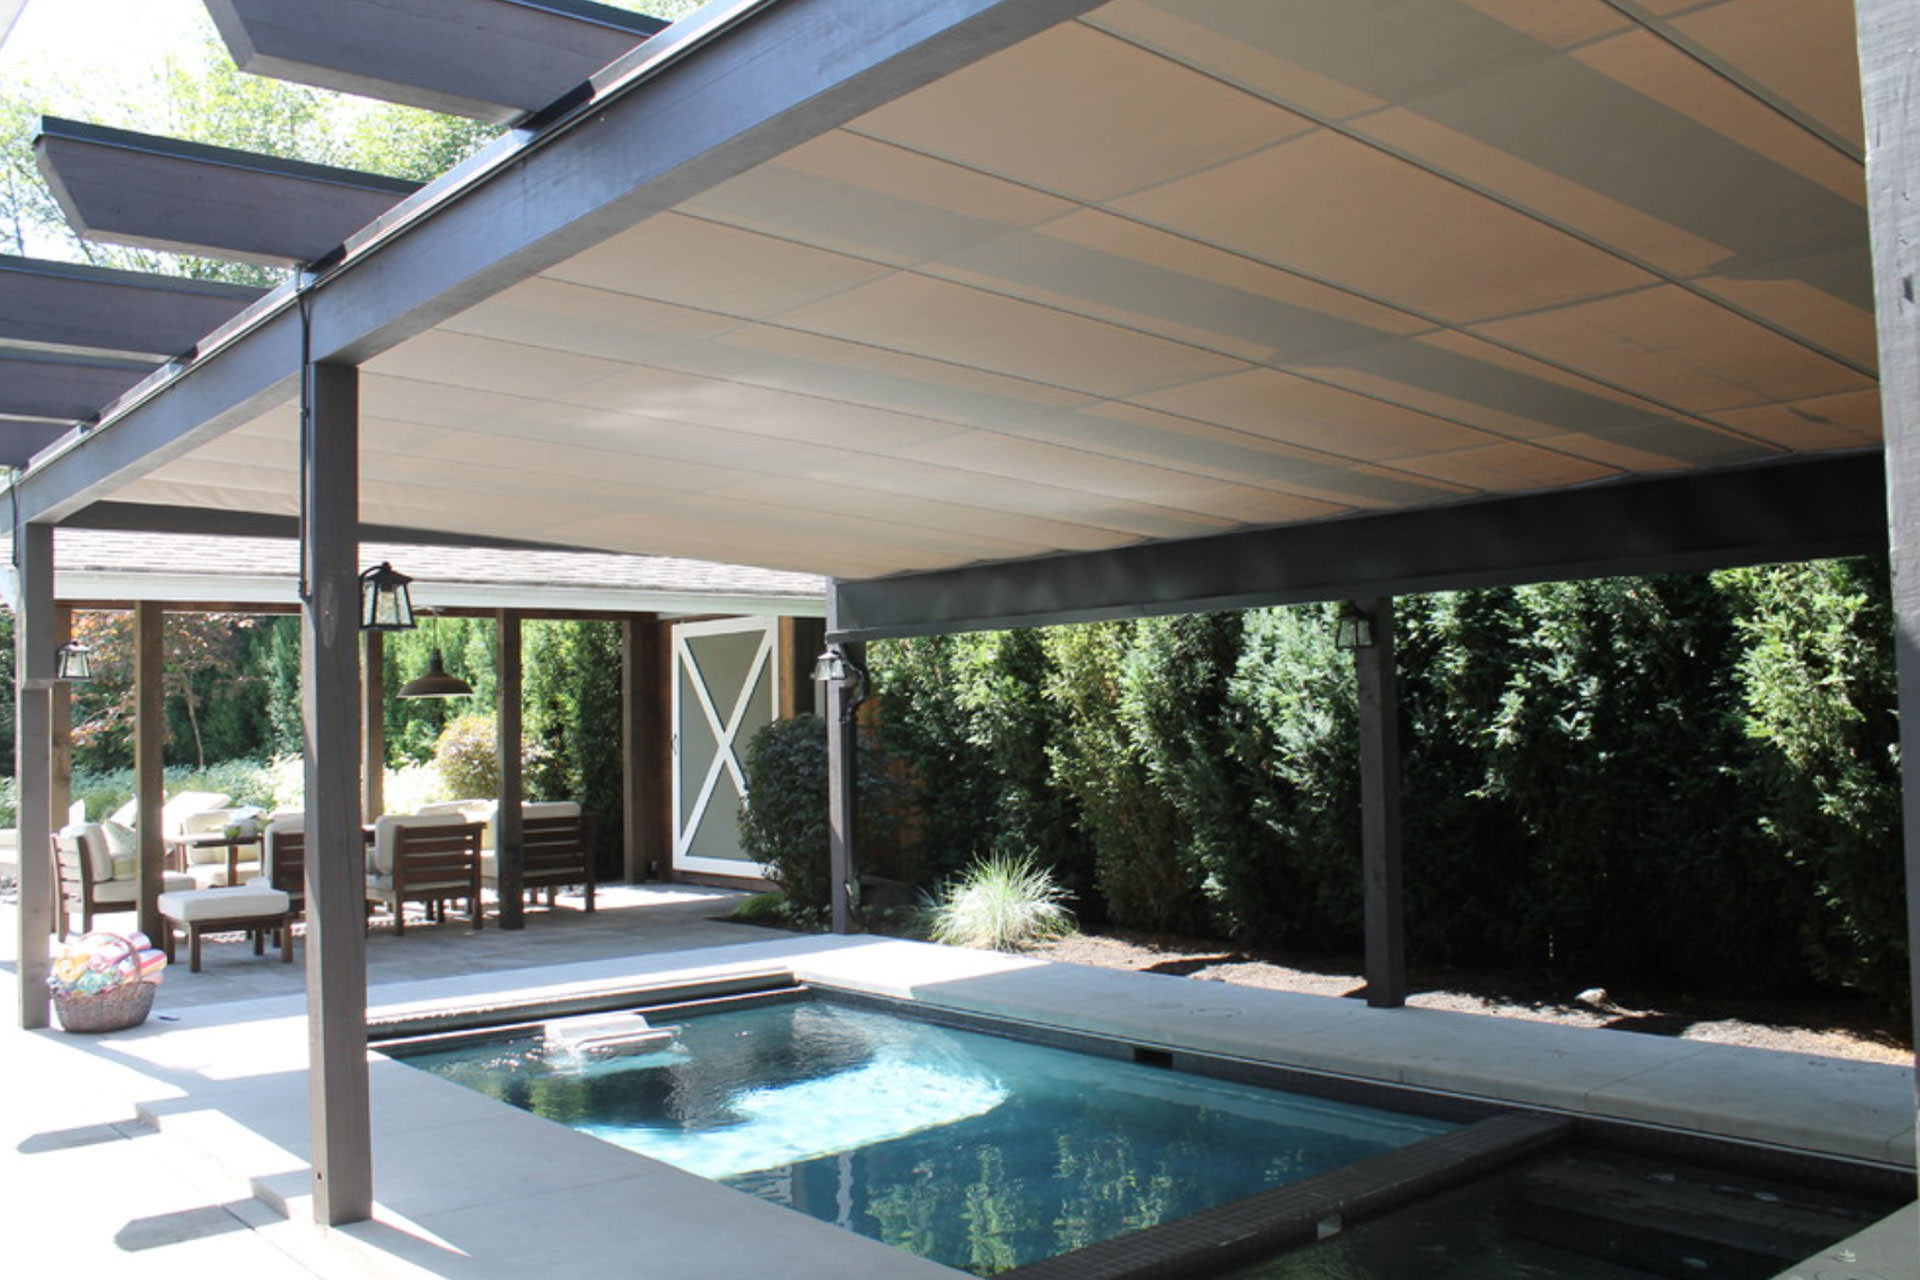 Pool Shade Ideas: 7 Ways to Cover Your Swimming Pool